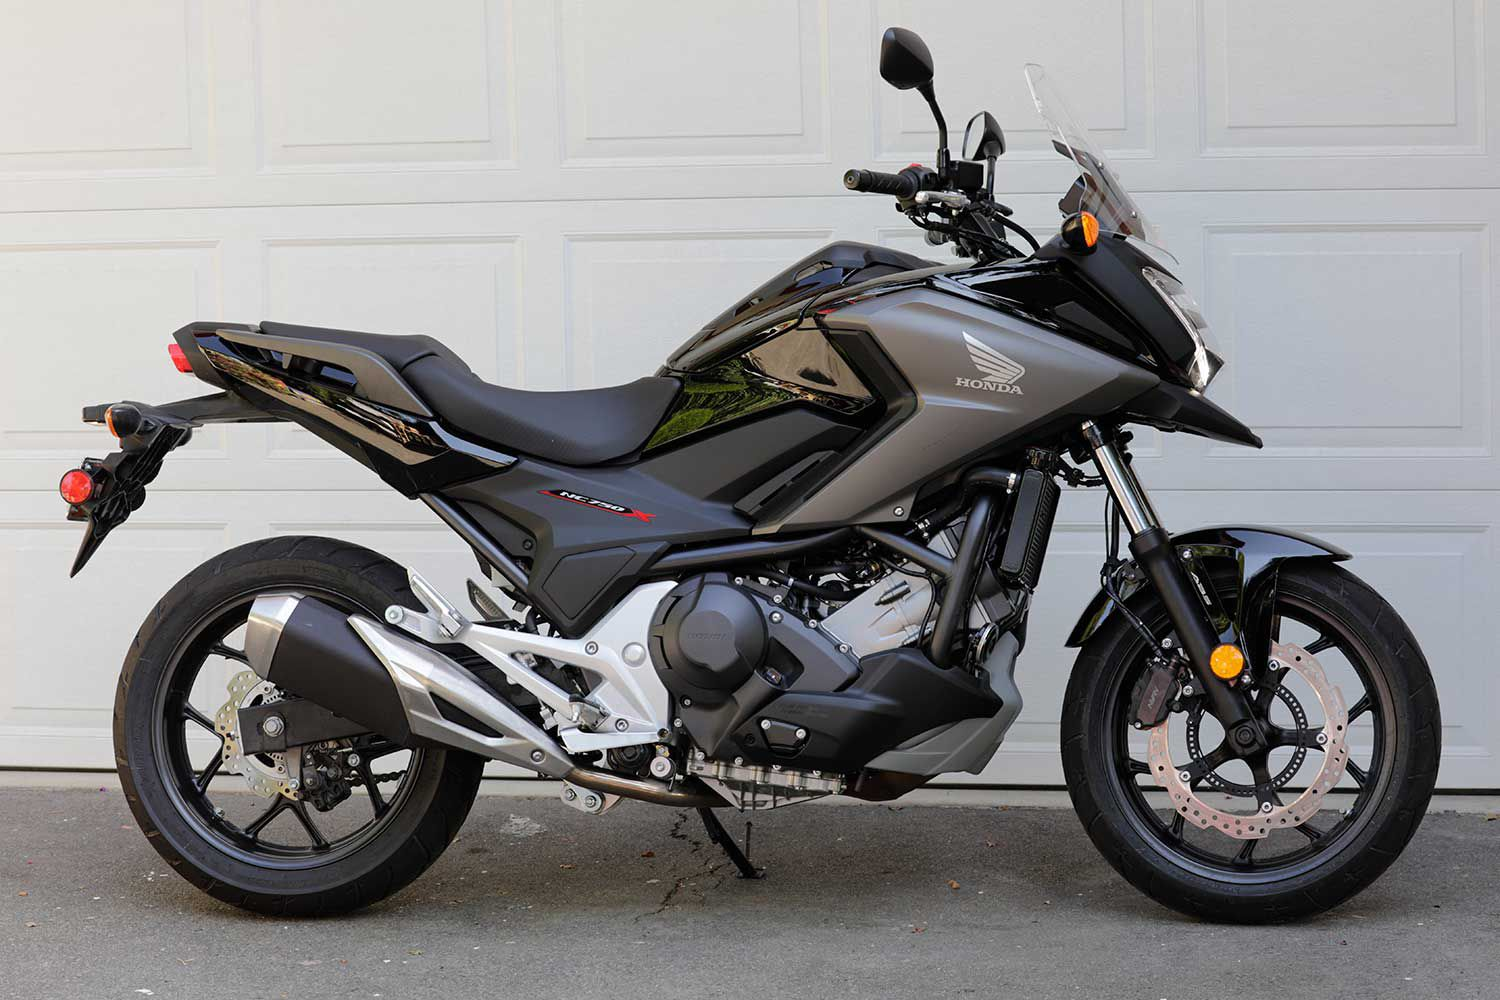 If you're seeking a near perfect commuter-style motorcycle, look no further than Honda's $8,899 NC750X.